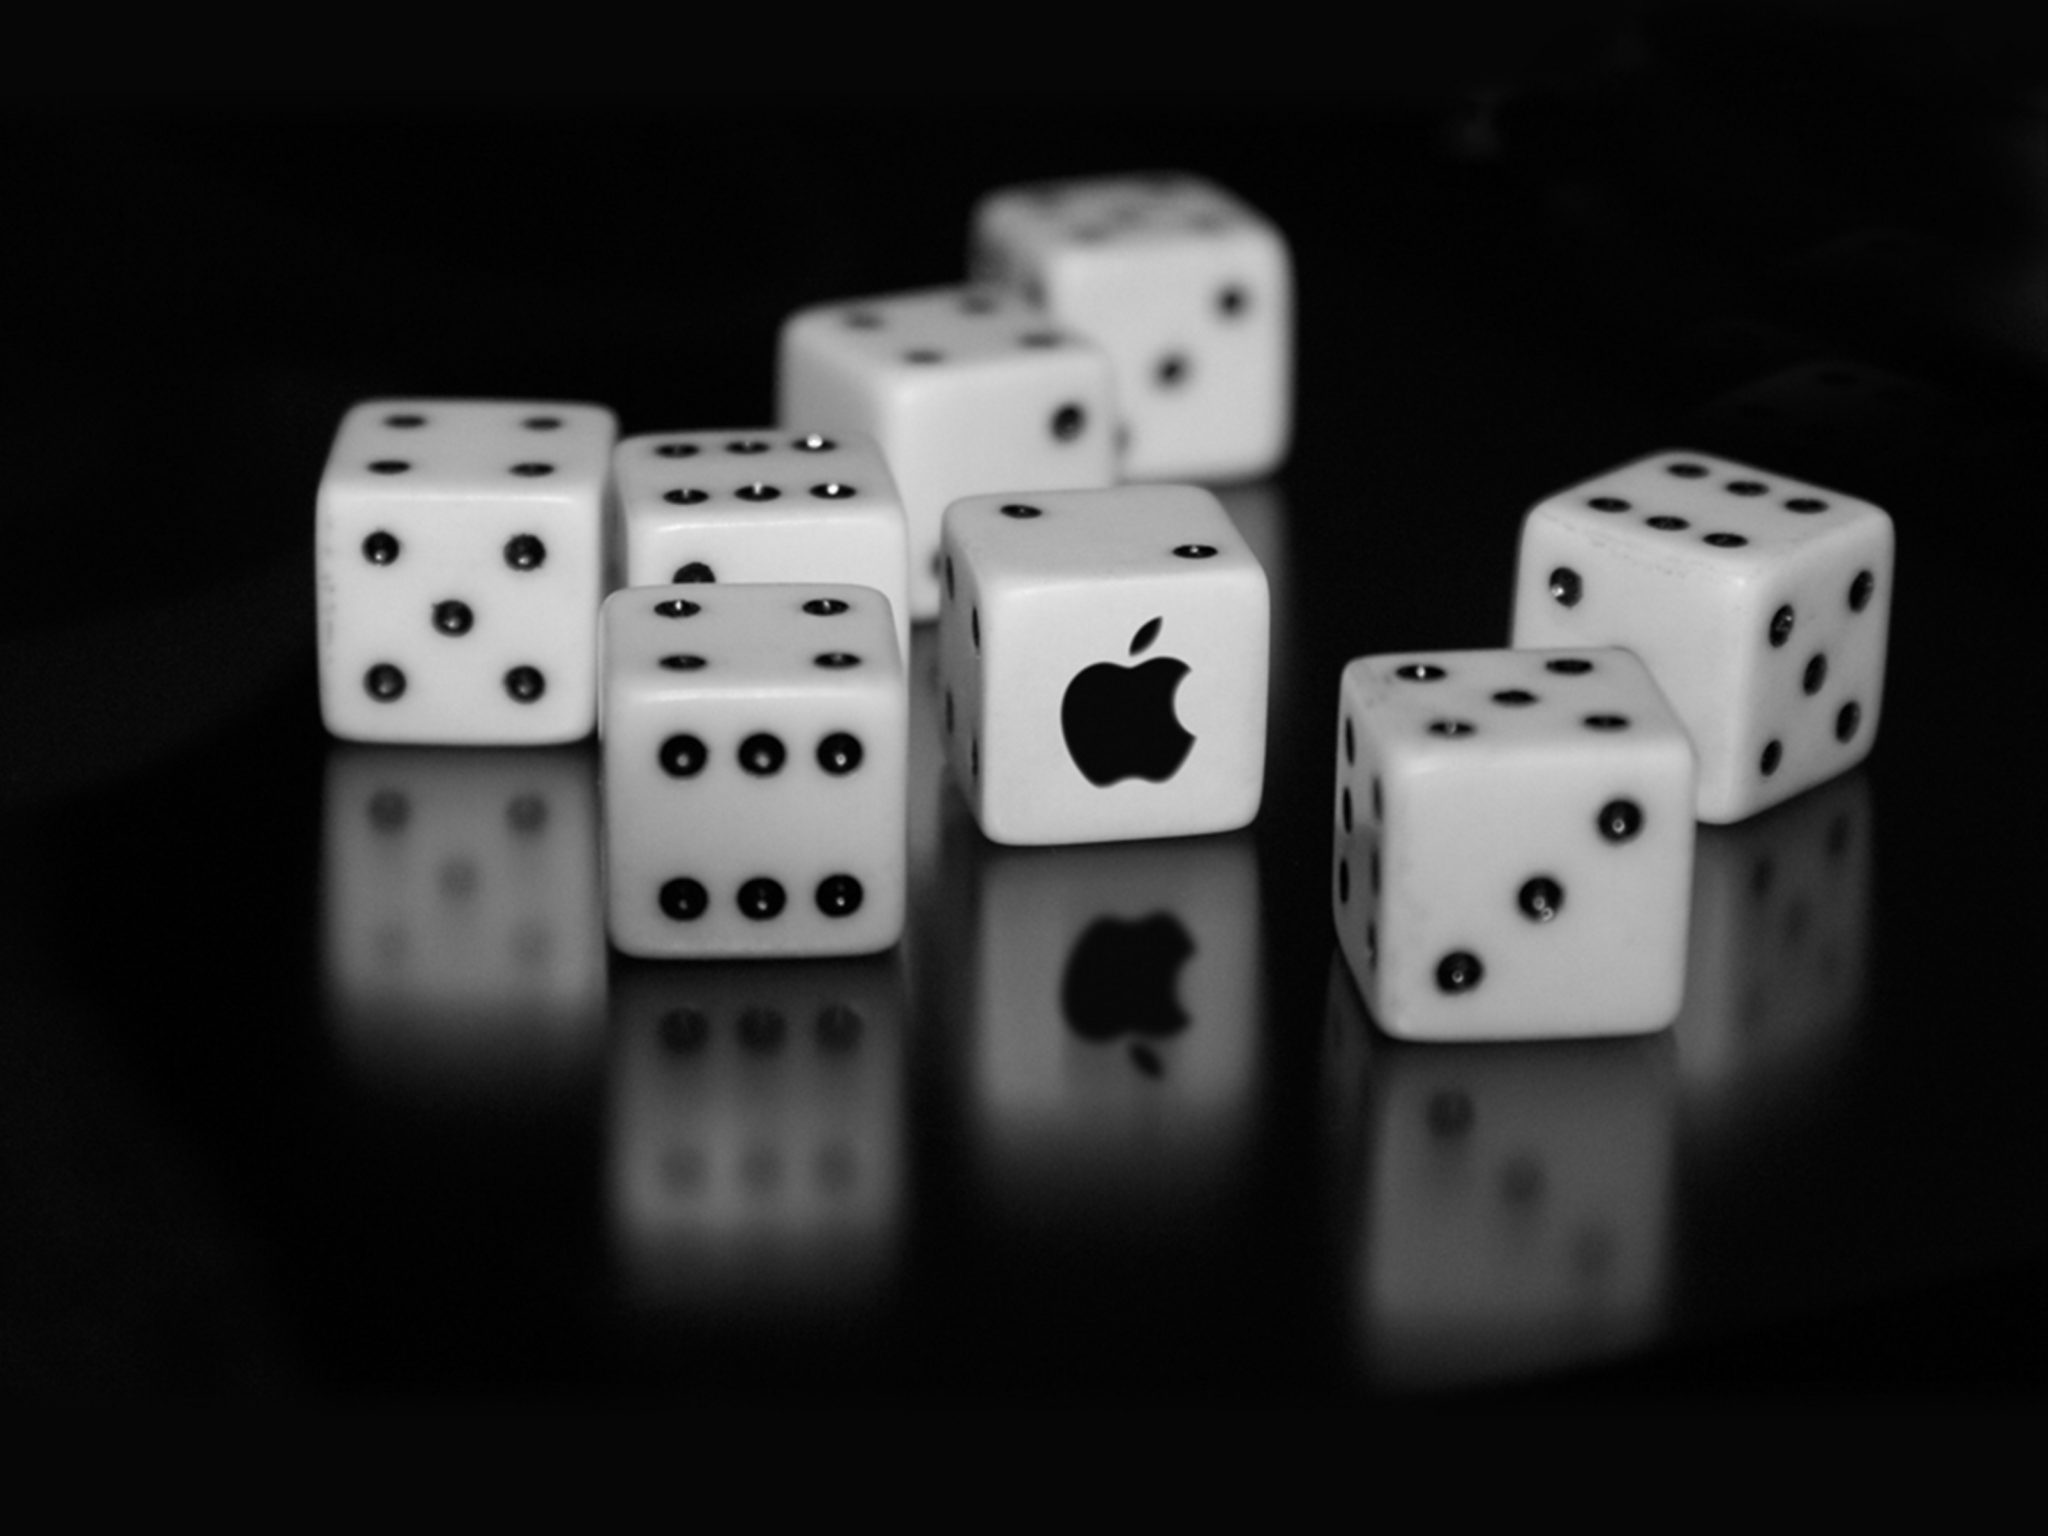 2048x1536 wallpaper Apple Logo Dice Ipad Wallpaper 2048x1536 pixels resolution